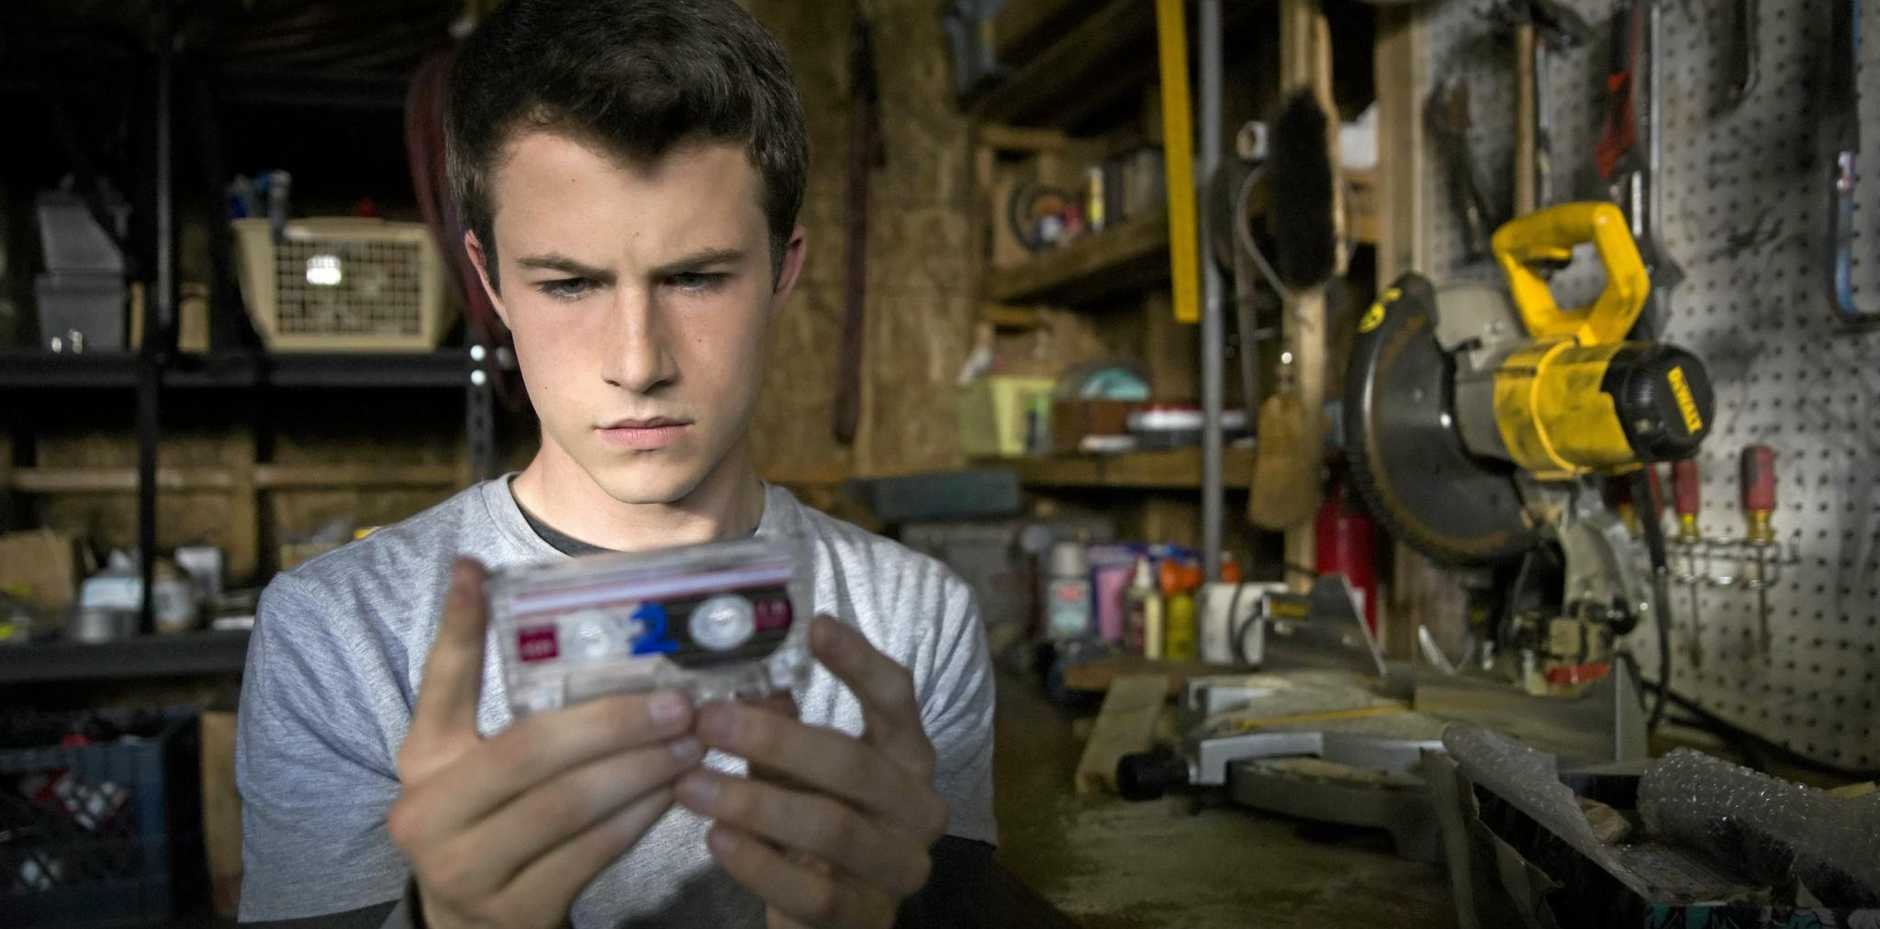 Dylan Minnette in a scene from the TV series 13 Reasons Why.